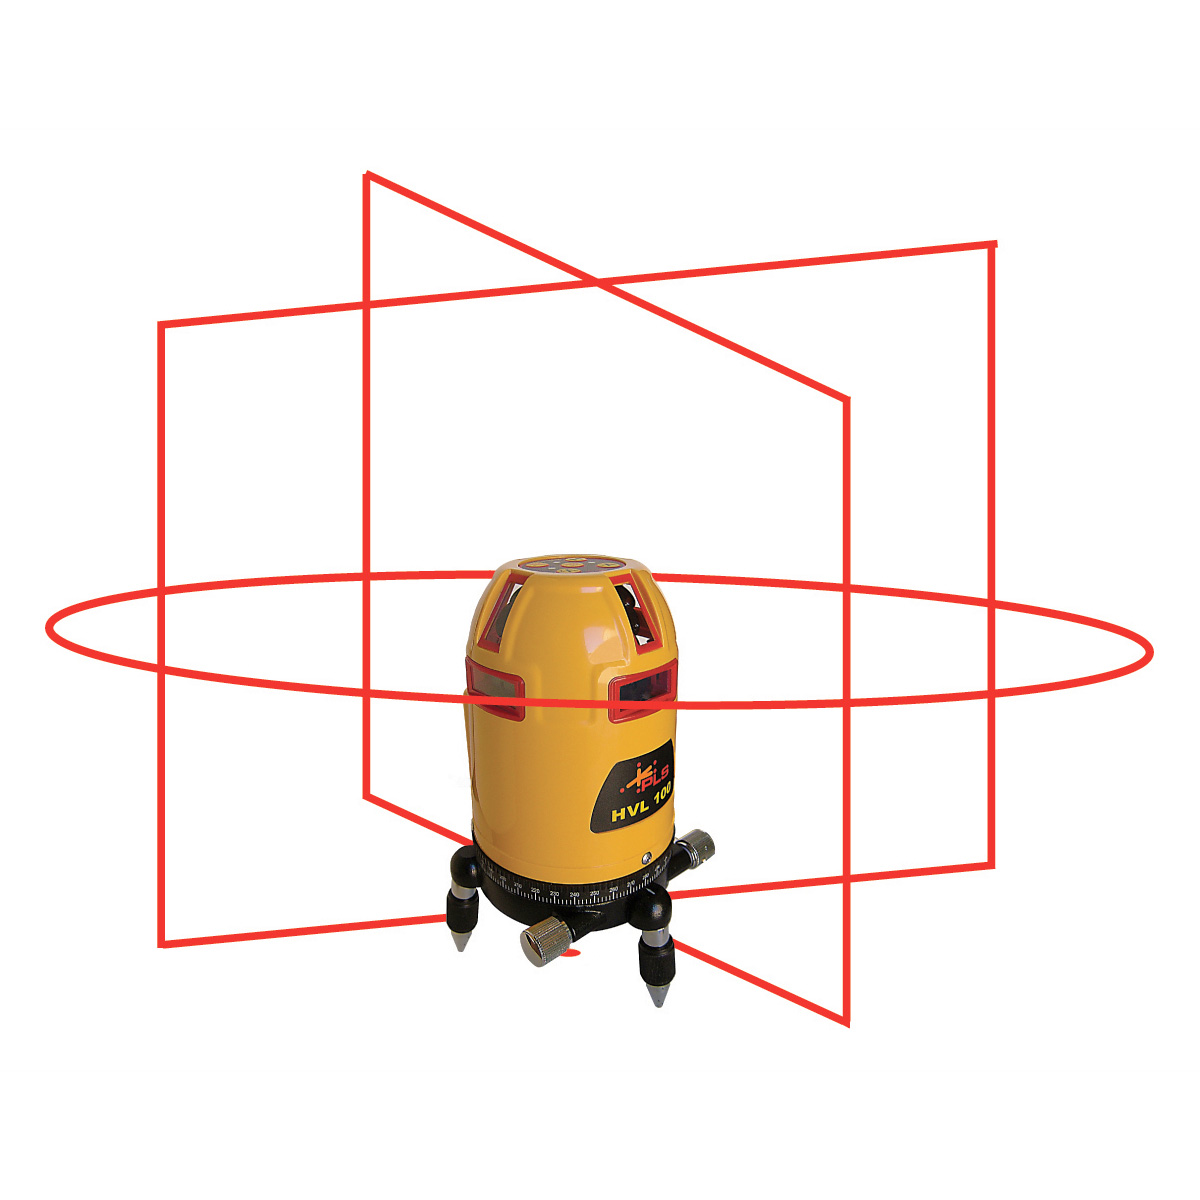 pacific laser systems hvl100 tool - horizontal and ... xbox 360 controller wire diagram laser level 360 wire diagram